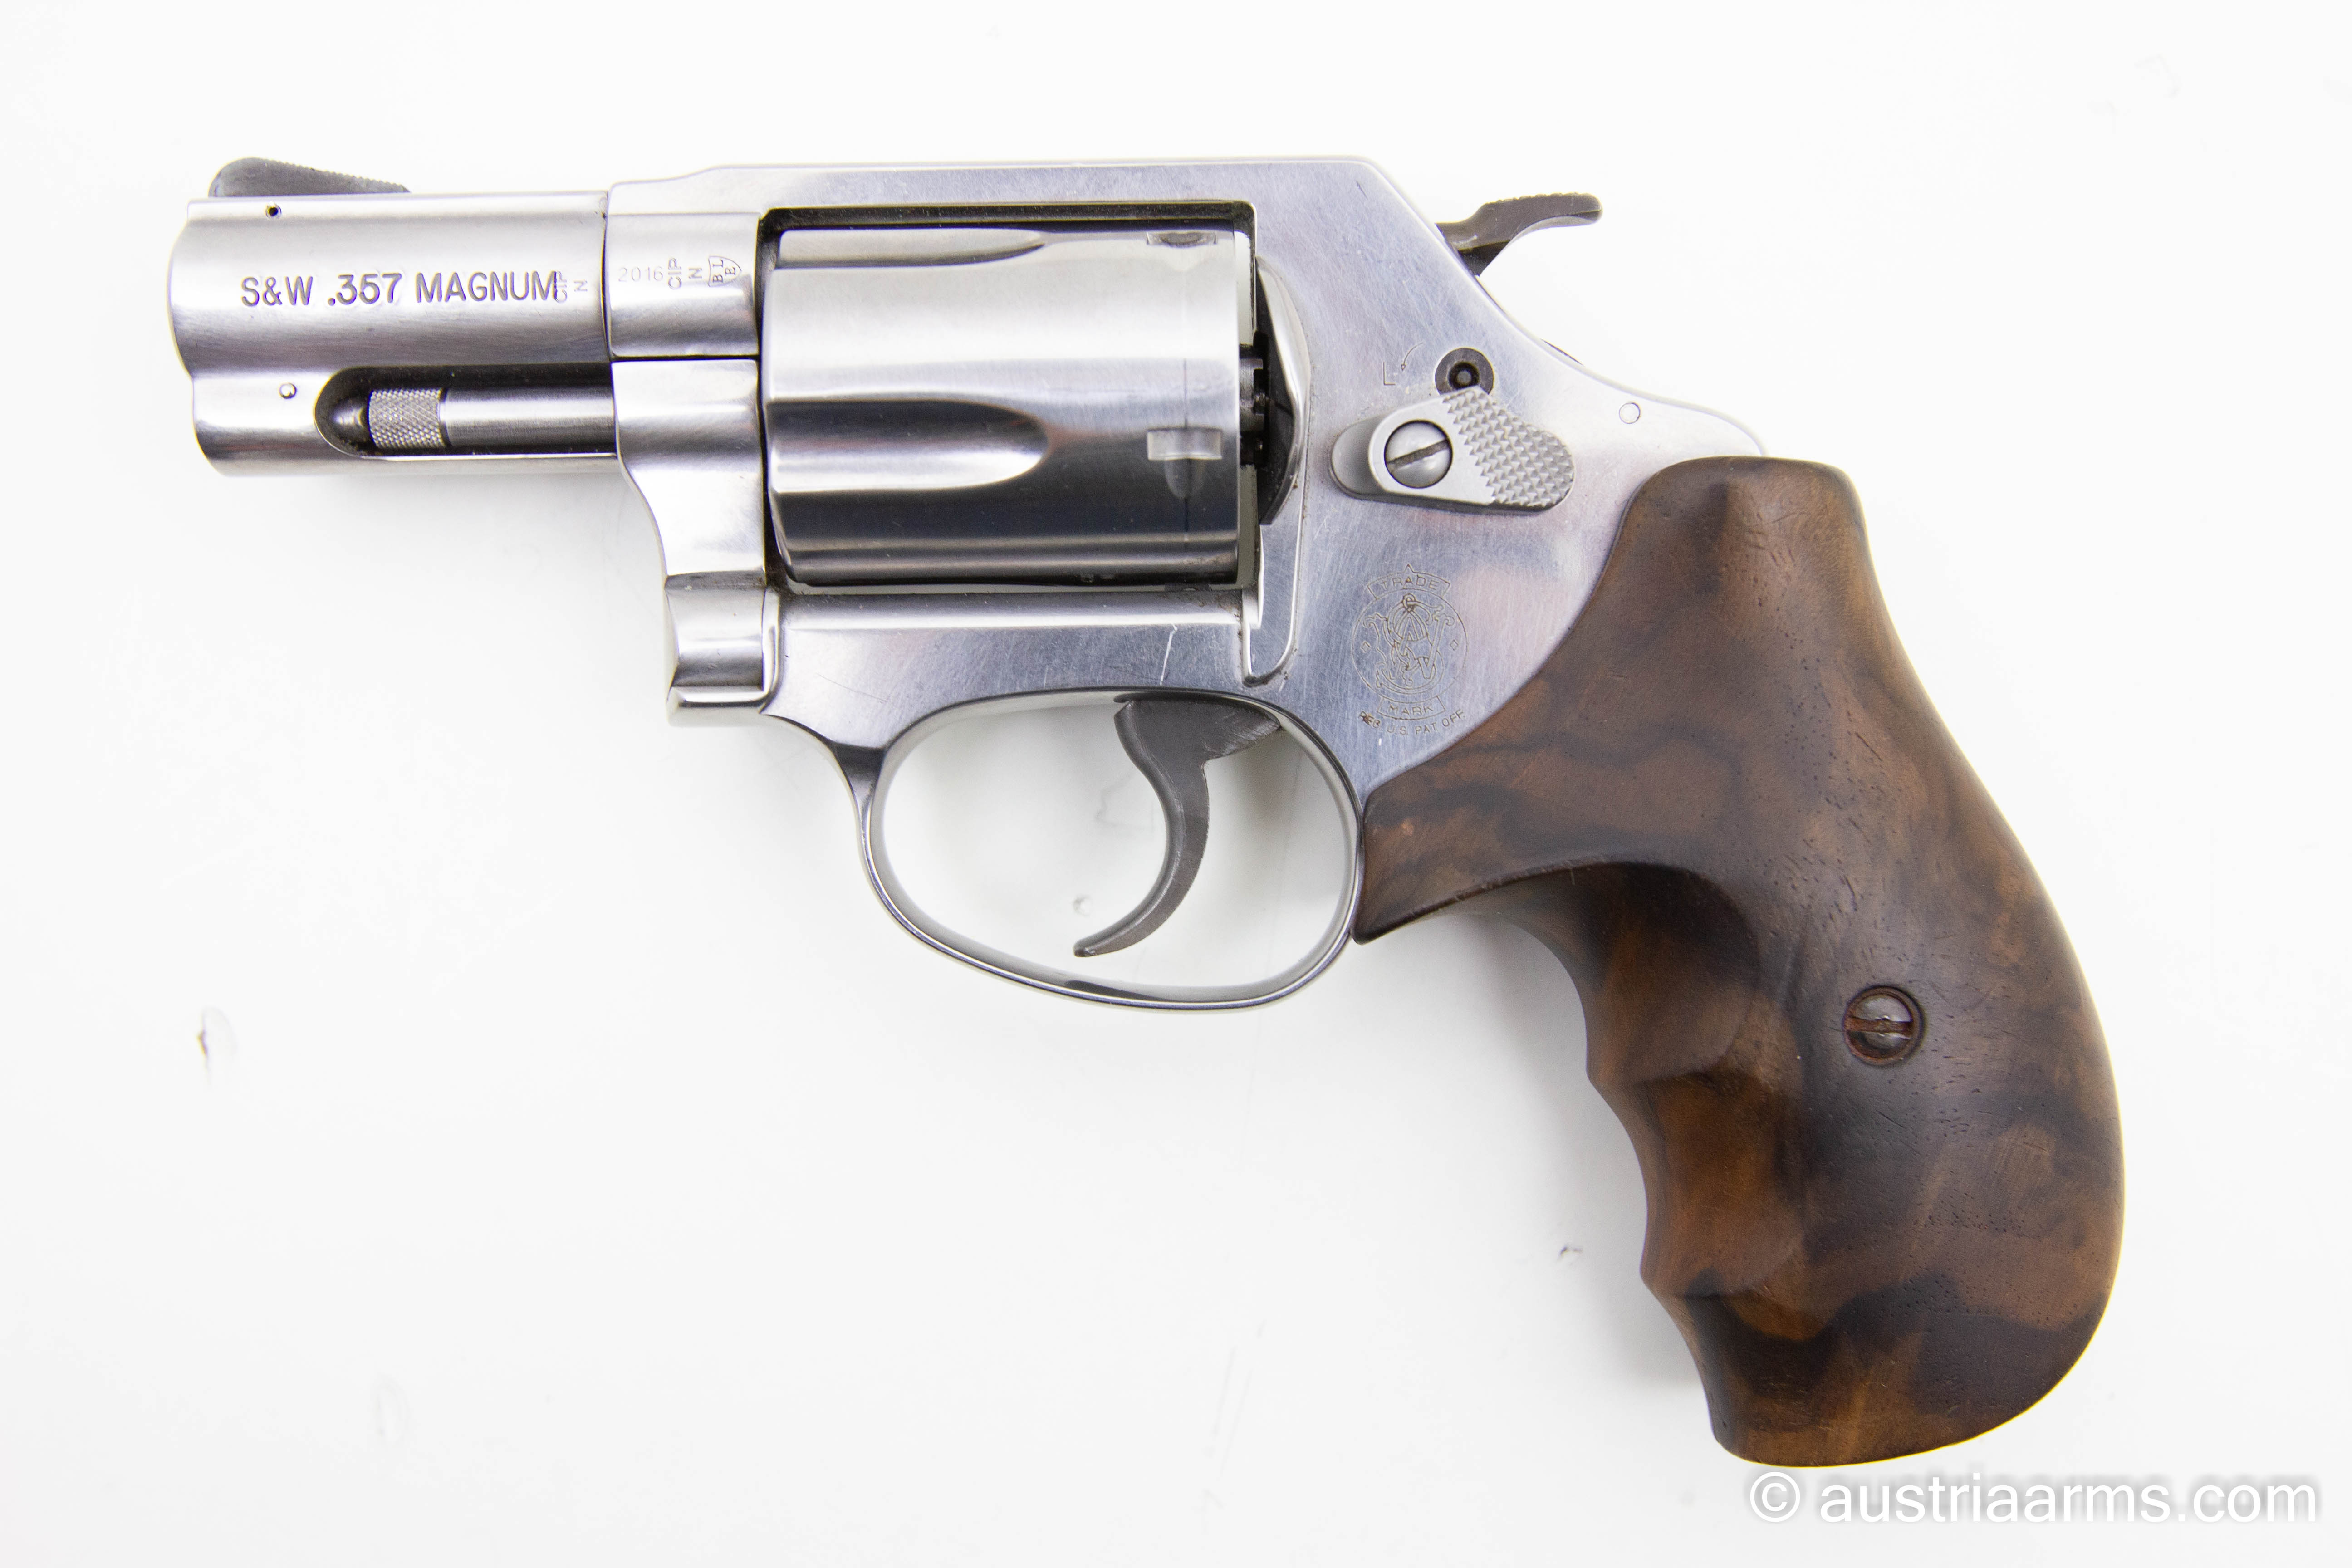 Smith & Wesson Mod. 60, 357 Magnum - Image 1